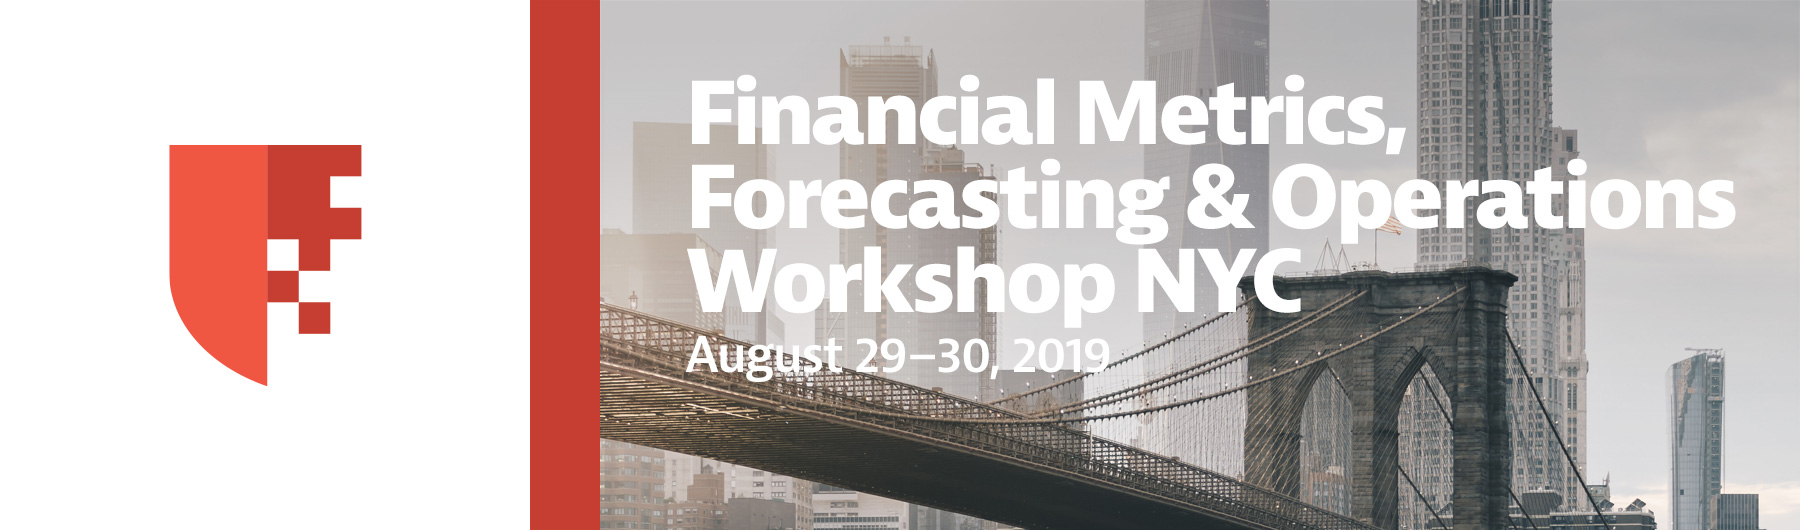 workshop-banners-sq-forecasting_nyc-aug.jpg